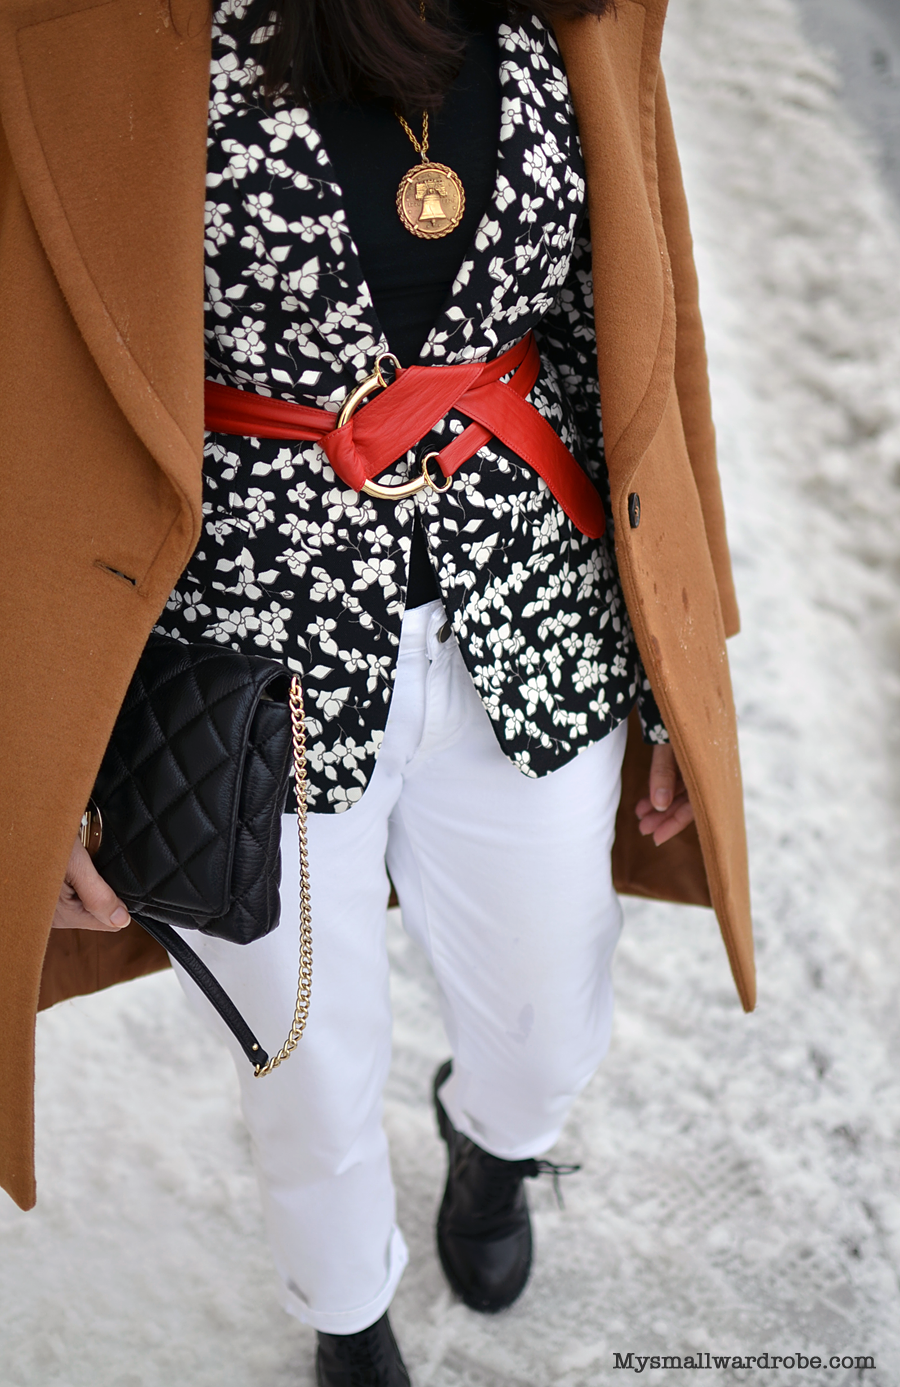 How to wear floral in winter